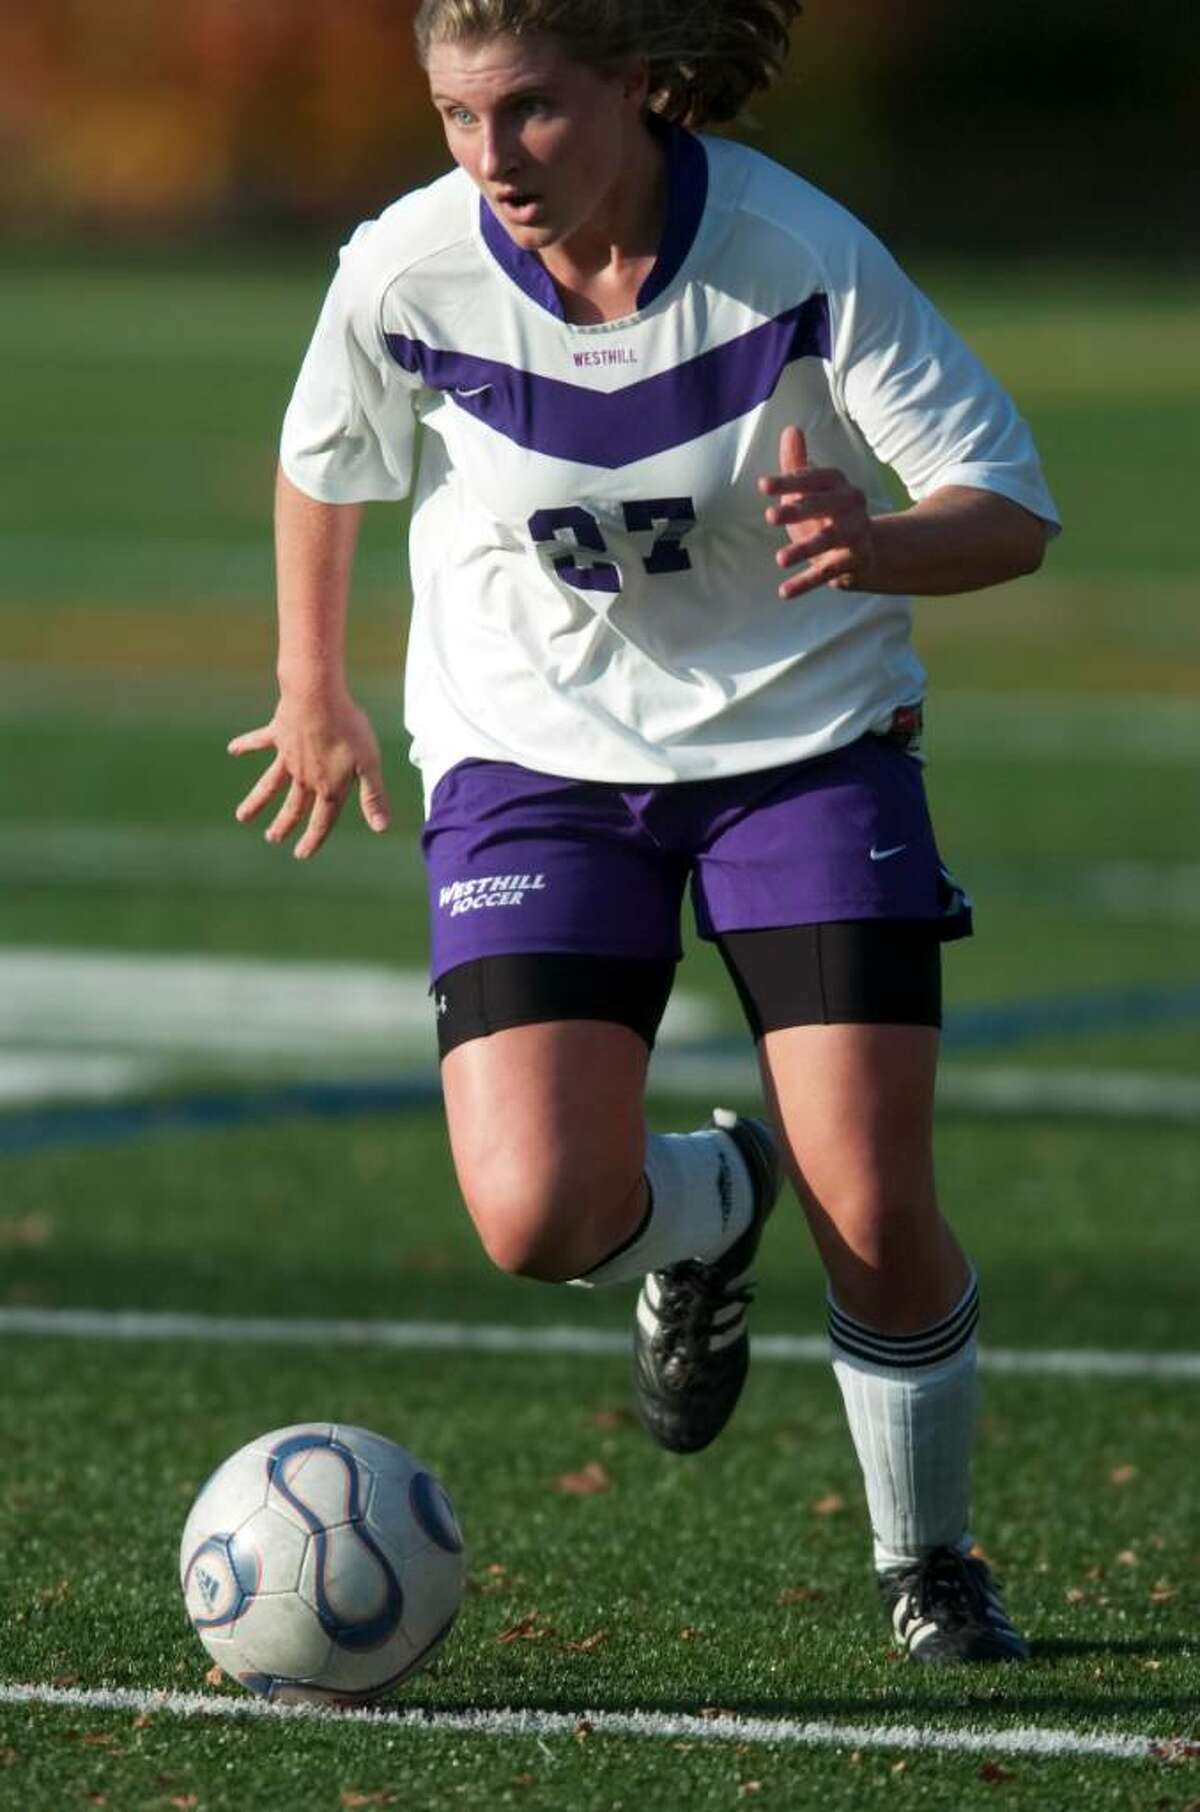 Westhill's Claire Mahoney heads down field during an FCIAC soccer game against Fairfield Warde High School at Westhill High School in Stamford, Conn. on Monday, Oct. 26, 2009.